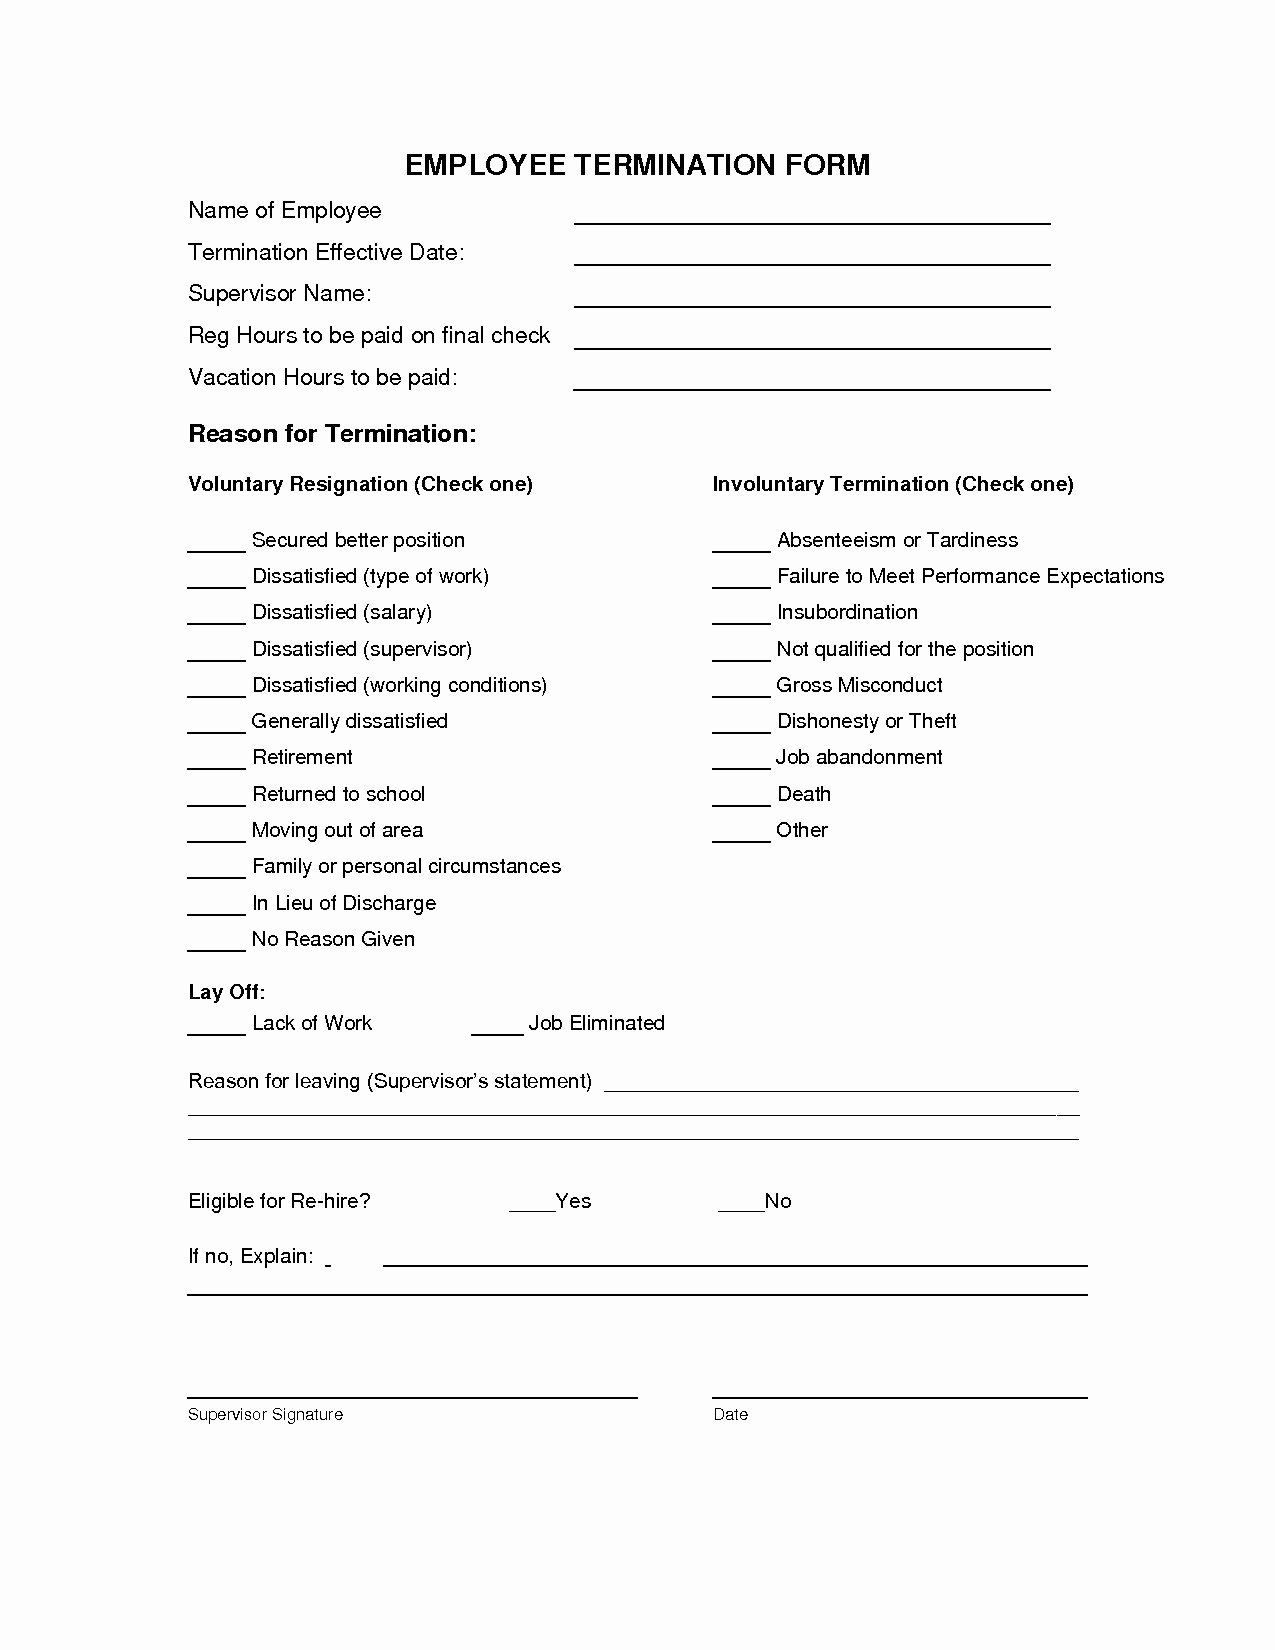 Employment Termination form Template Beautiful Employee Termination form Template Free Pics – Free